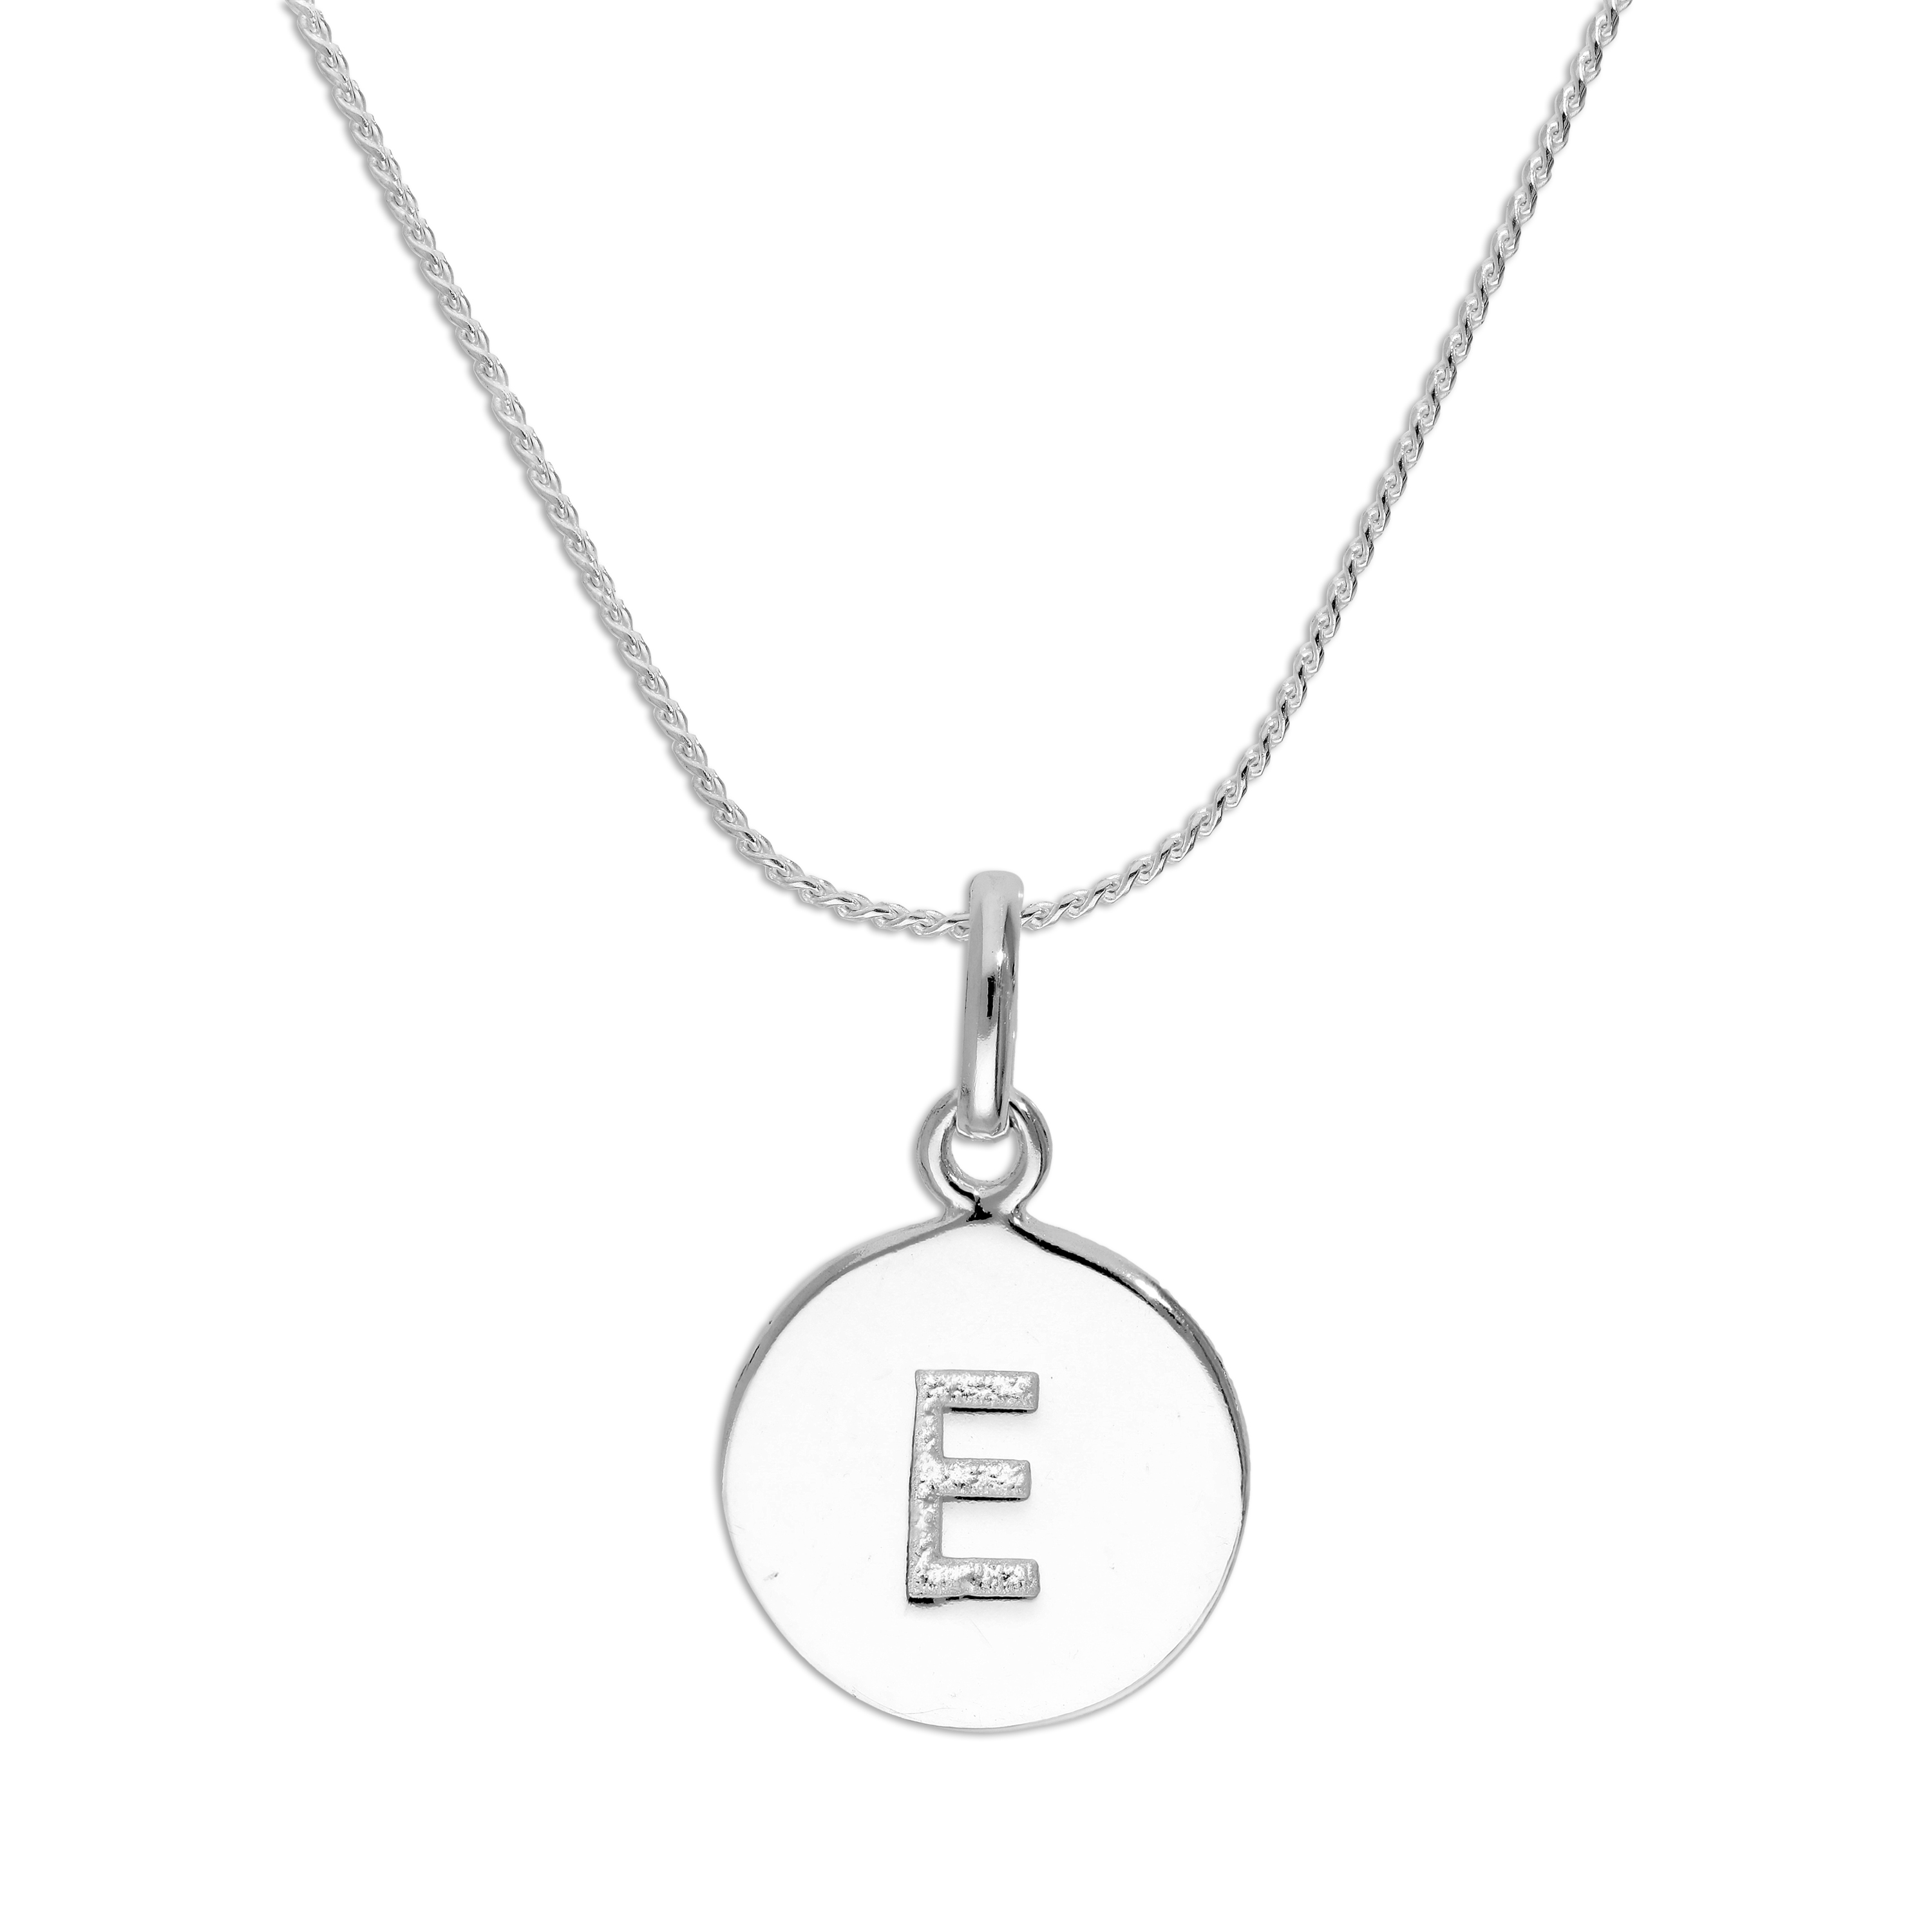 An image of Sterling Silver Initial Letter E Necklace 22 Inches Blue